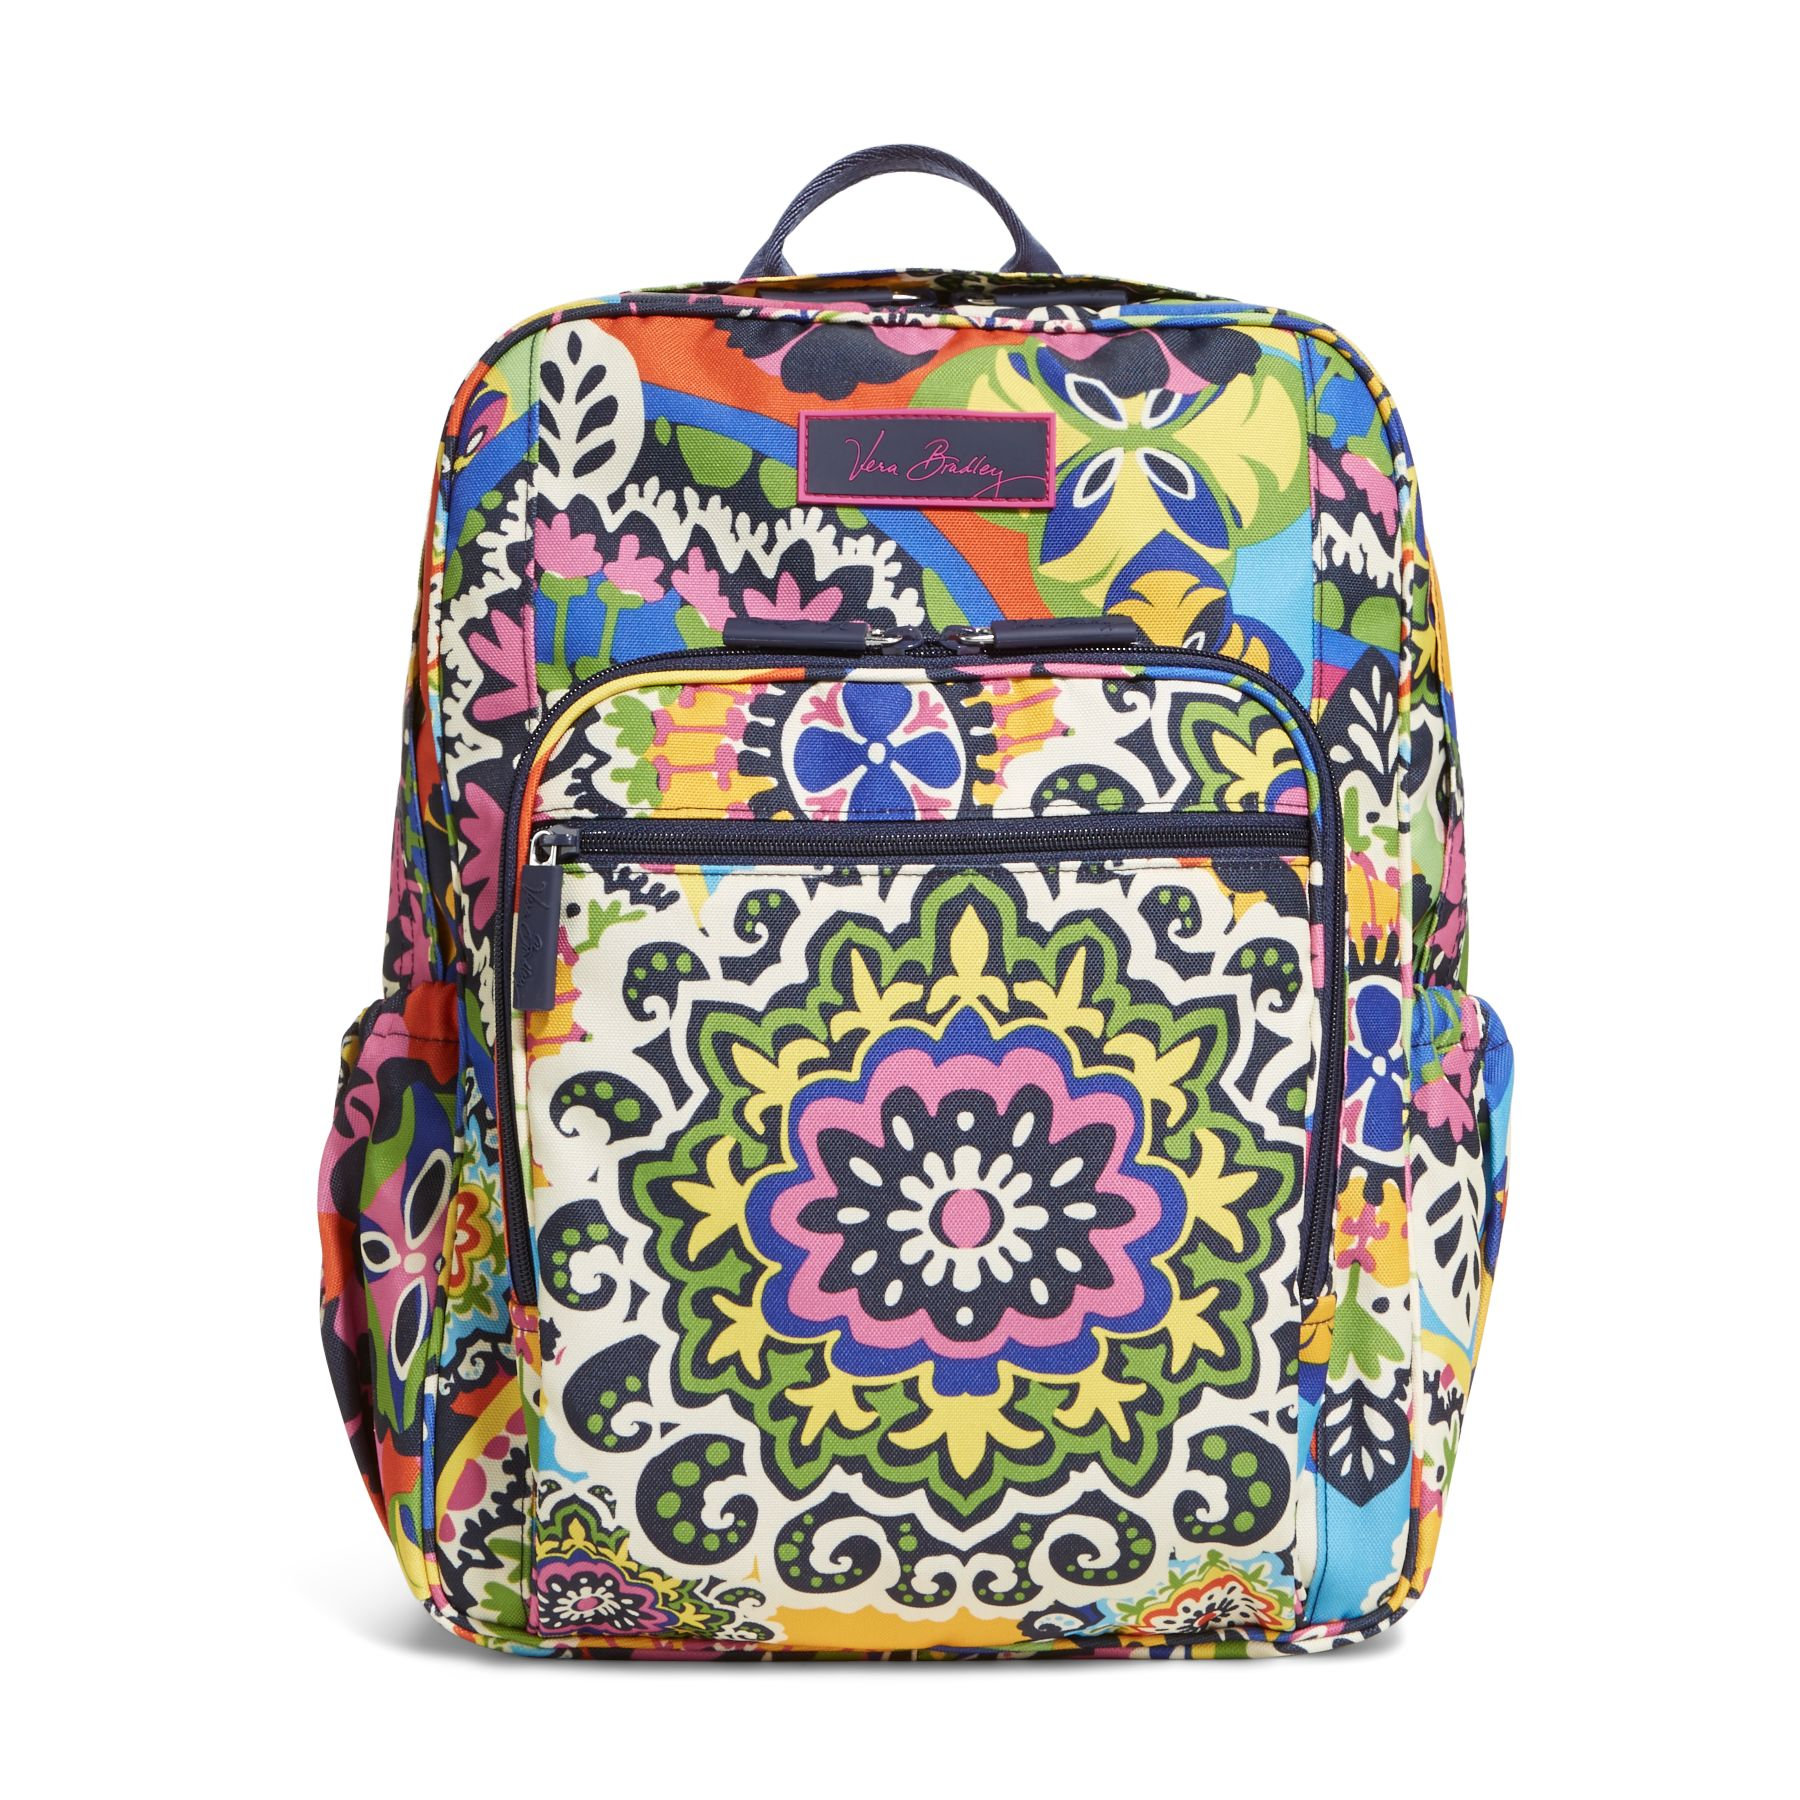 Vera Bradley Lighten Up Medium Backpack in Rio